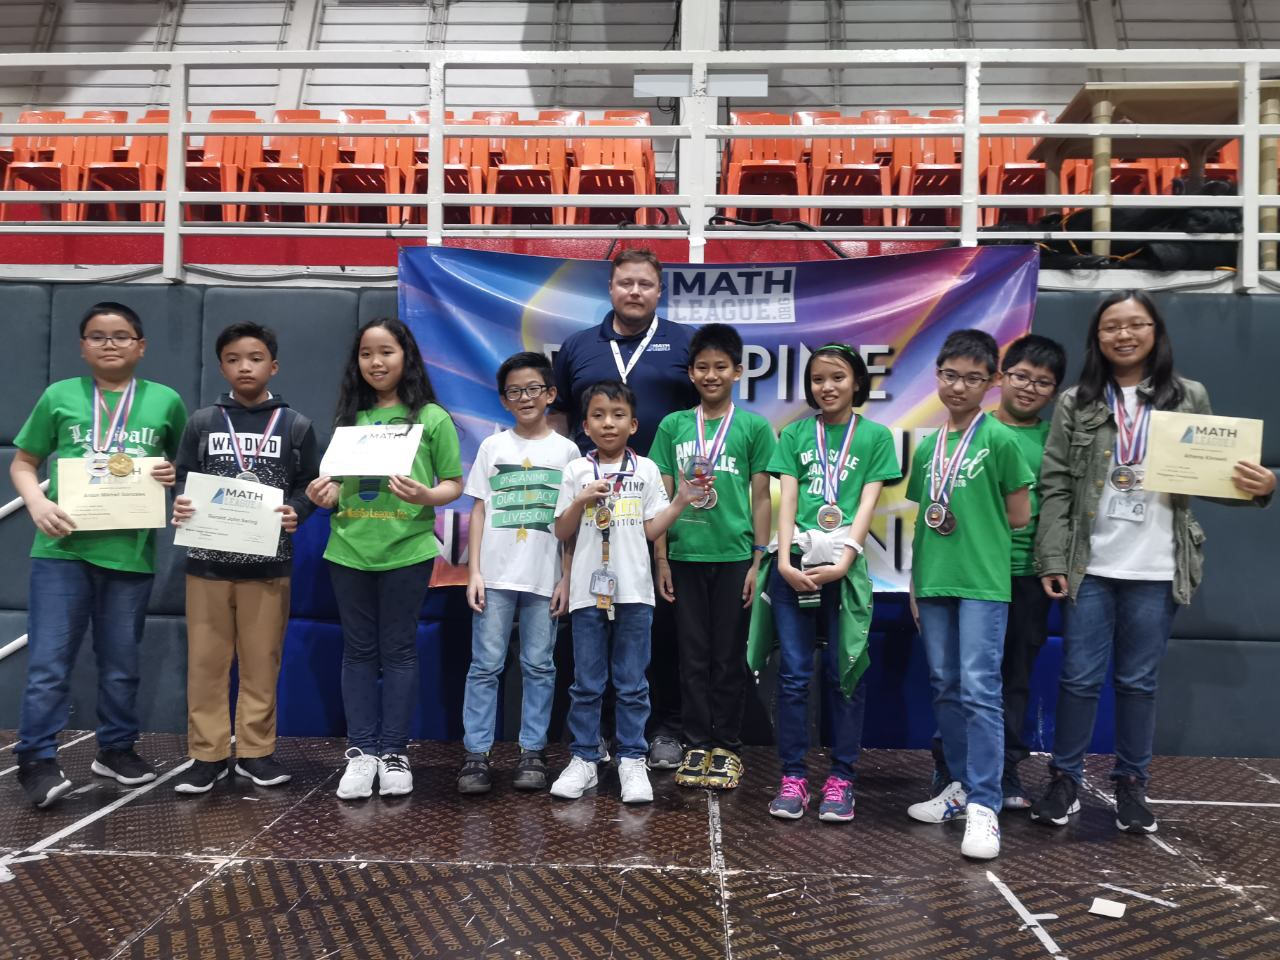 DLSZ Mathletes with Mr. Tim Sanders, the Founder and President of Math League who was the guest of honor during the awarding. (L-R) Anton Gonzales, RJ Sering, Reese Albano, Gian Casimiro, Joshua Milan, Gian Ignacio, Julia Cruz, Jacob Bernas, Aldrich Kimwell, & Athena Kimwell.